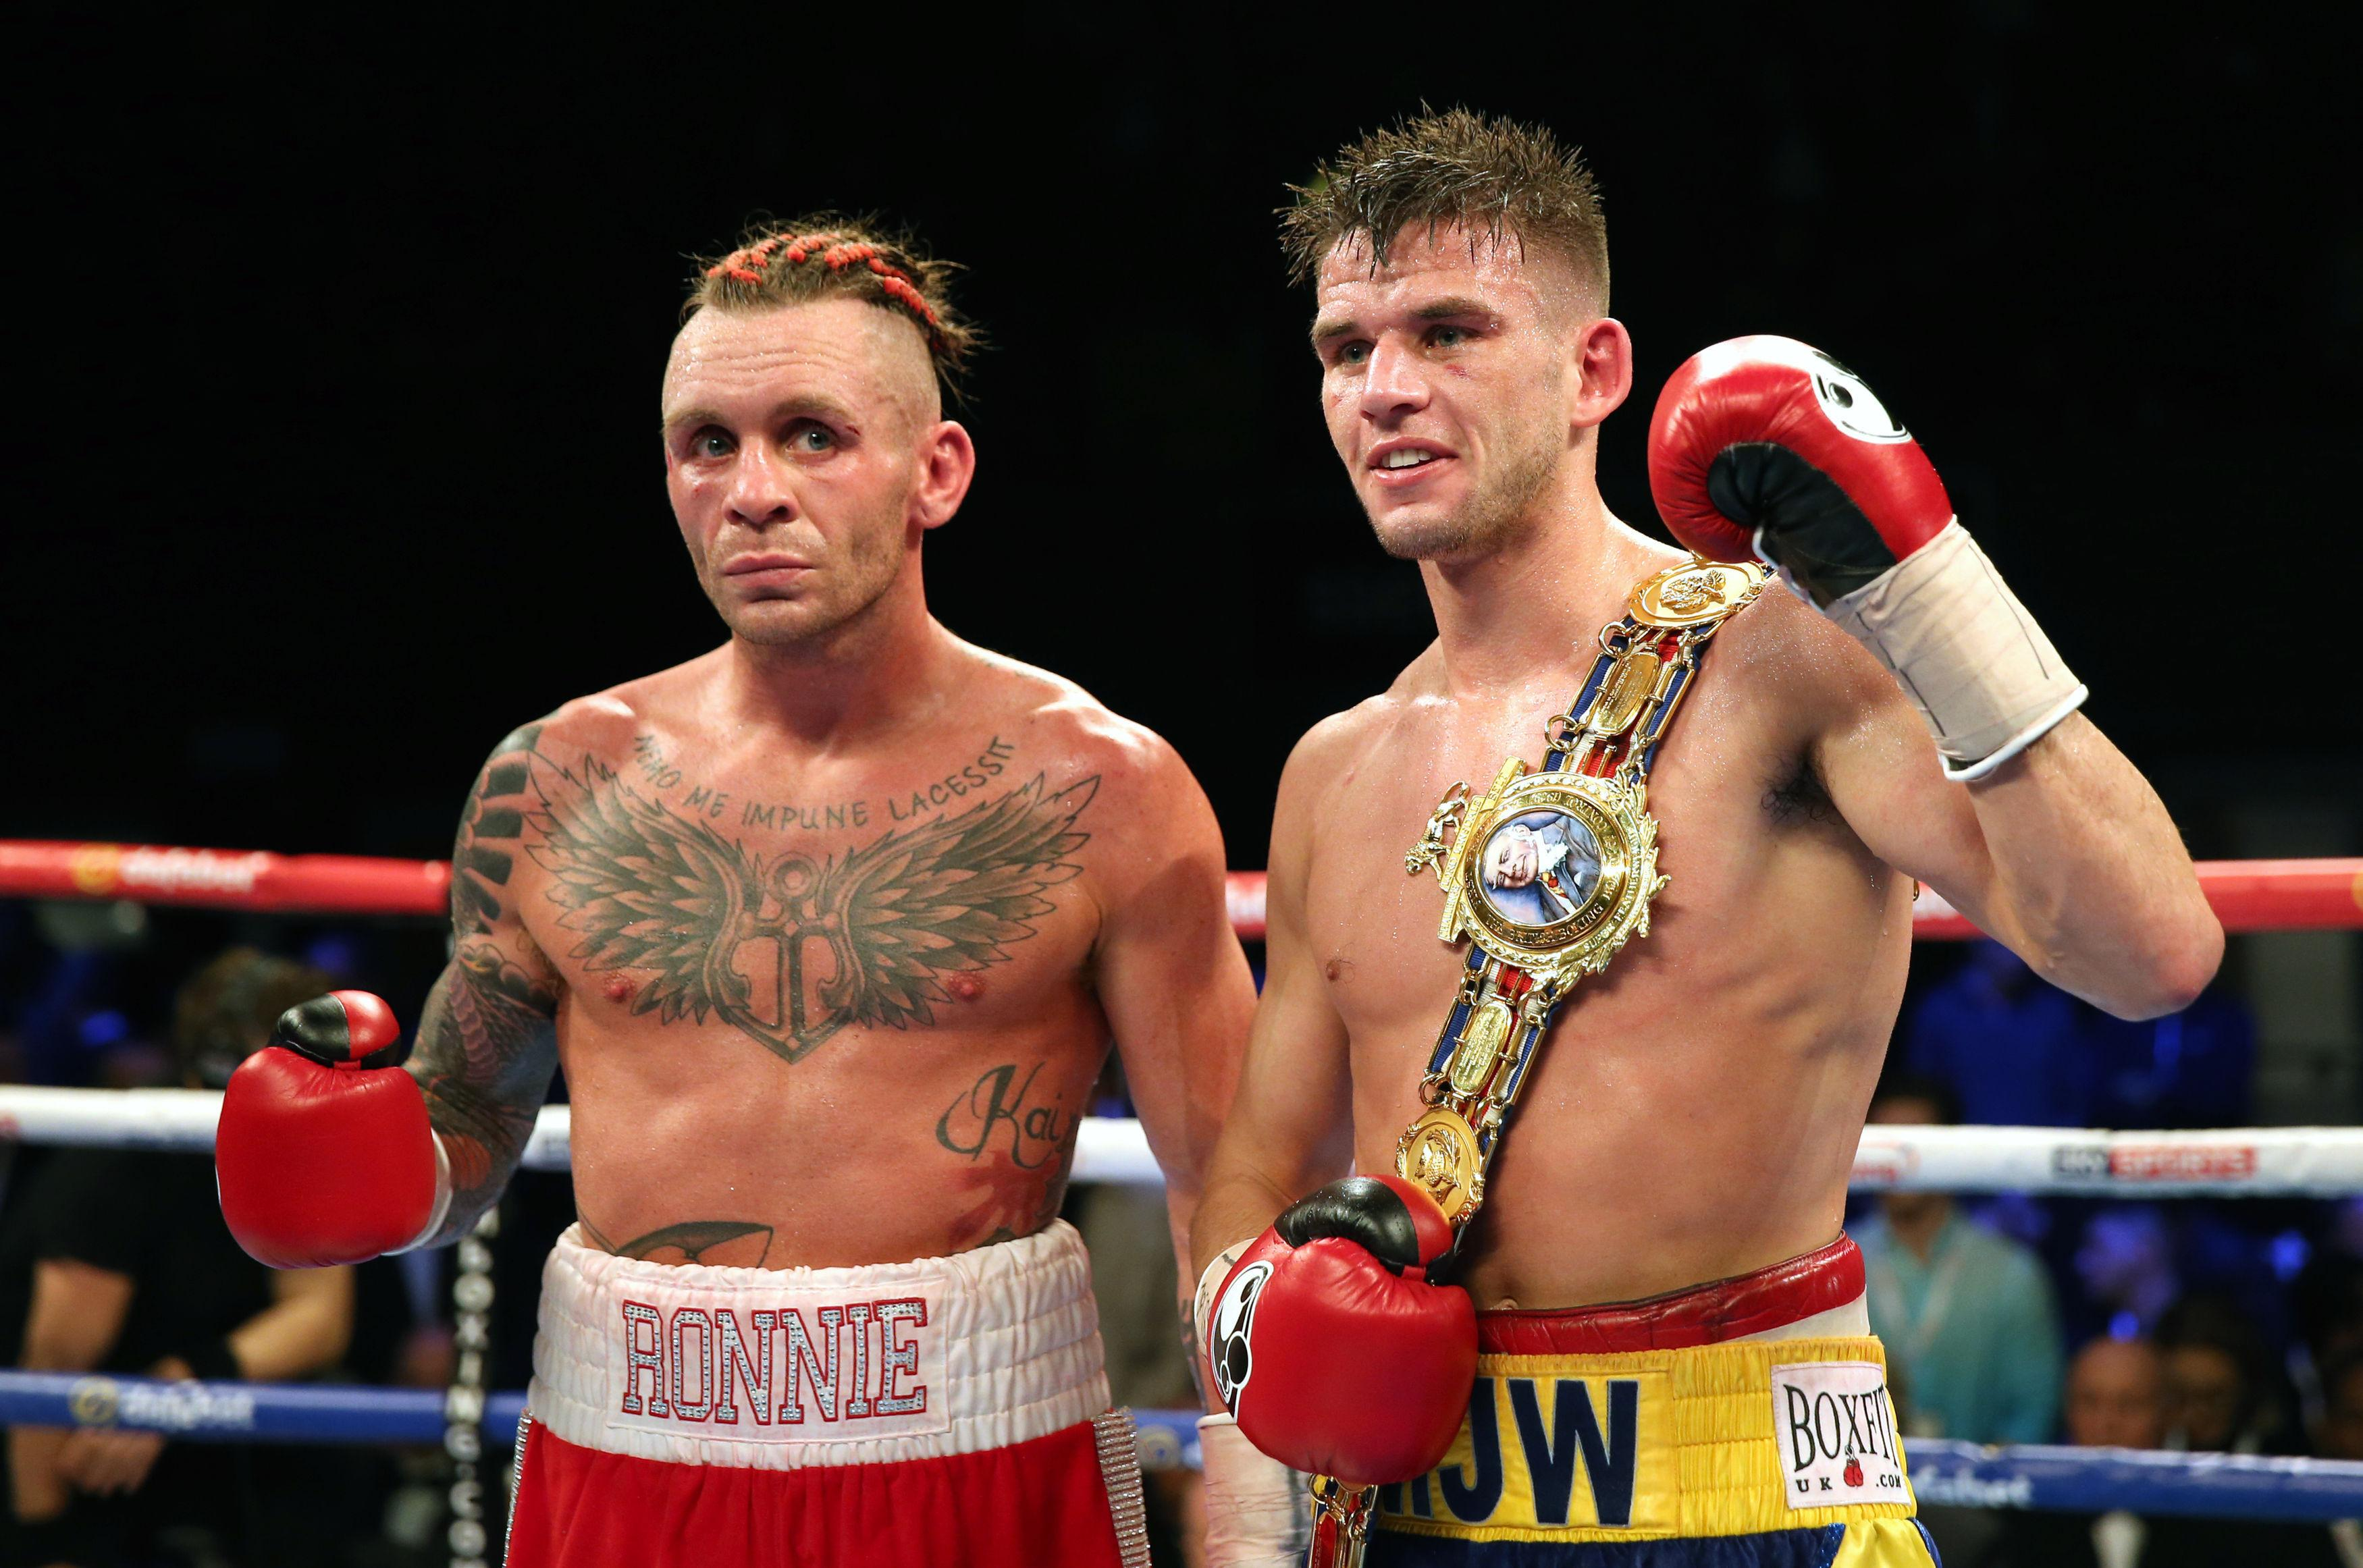 Barrett fought for the British title against Martin J Ward in 2016 - but lost via decision